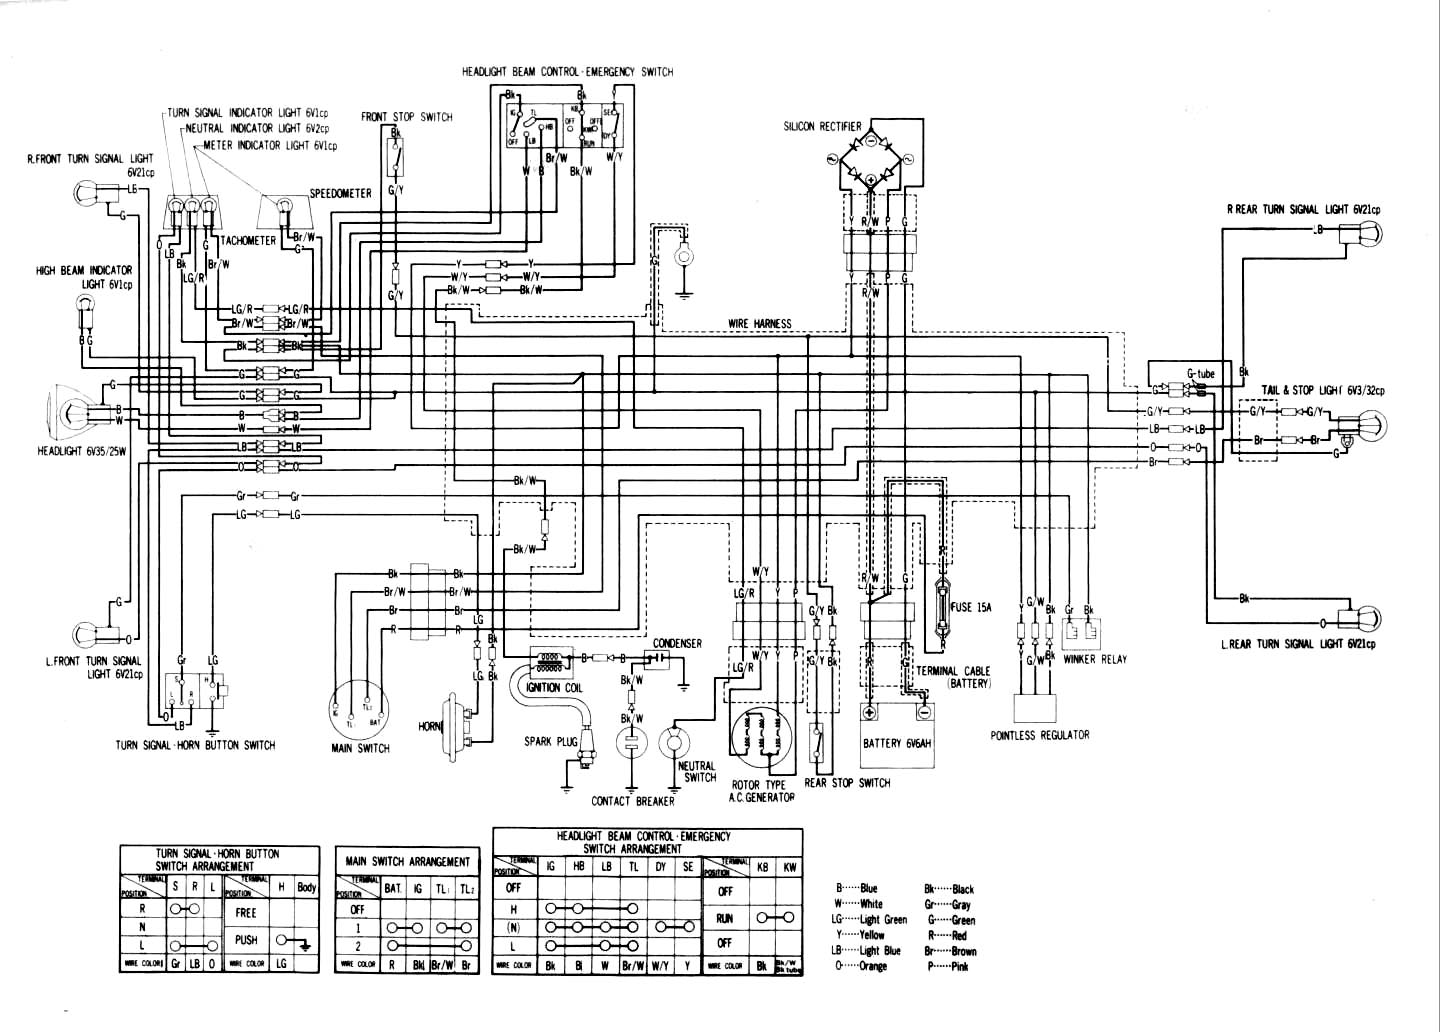 xl175 honda xl 125 wiring diagram 1981 honda xl 125 wiring diagram 1974 honda cb360 wiring diagram at alyssarenee.co